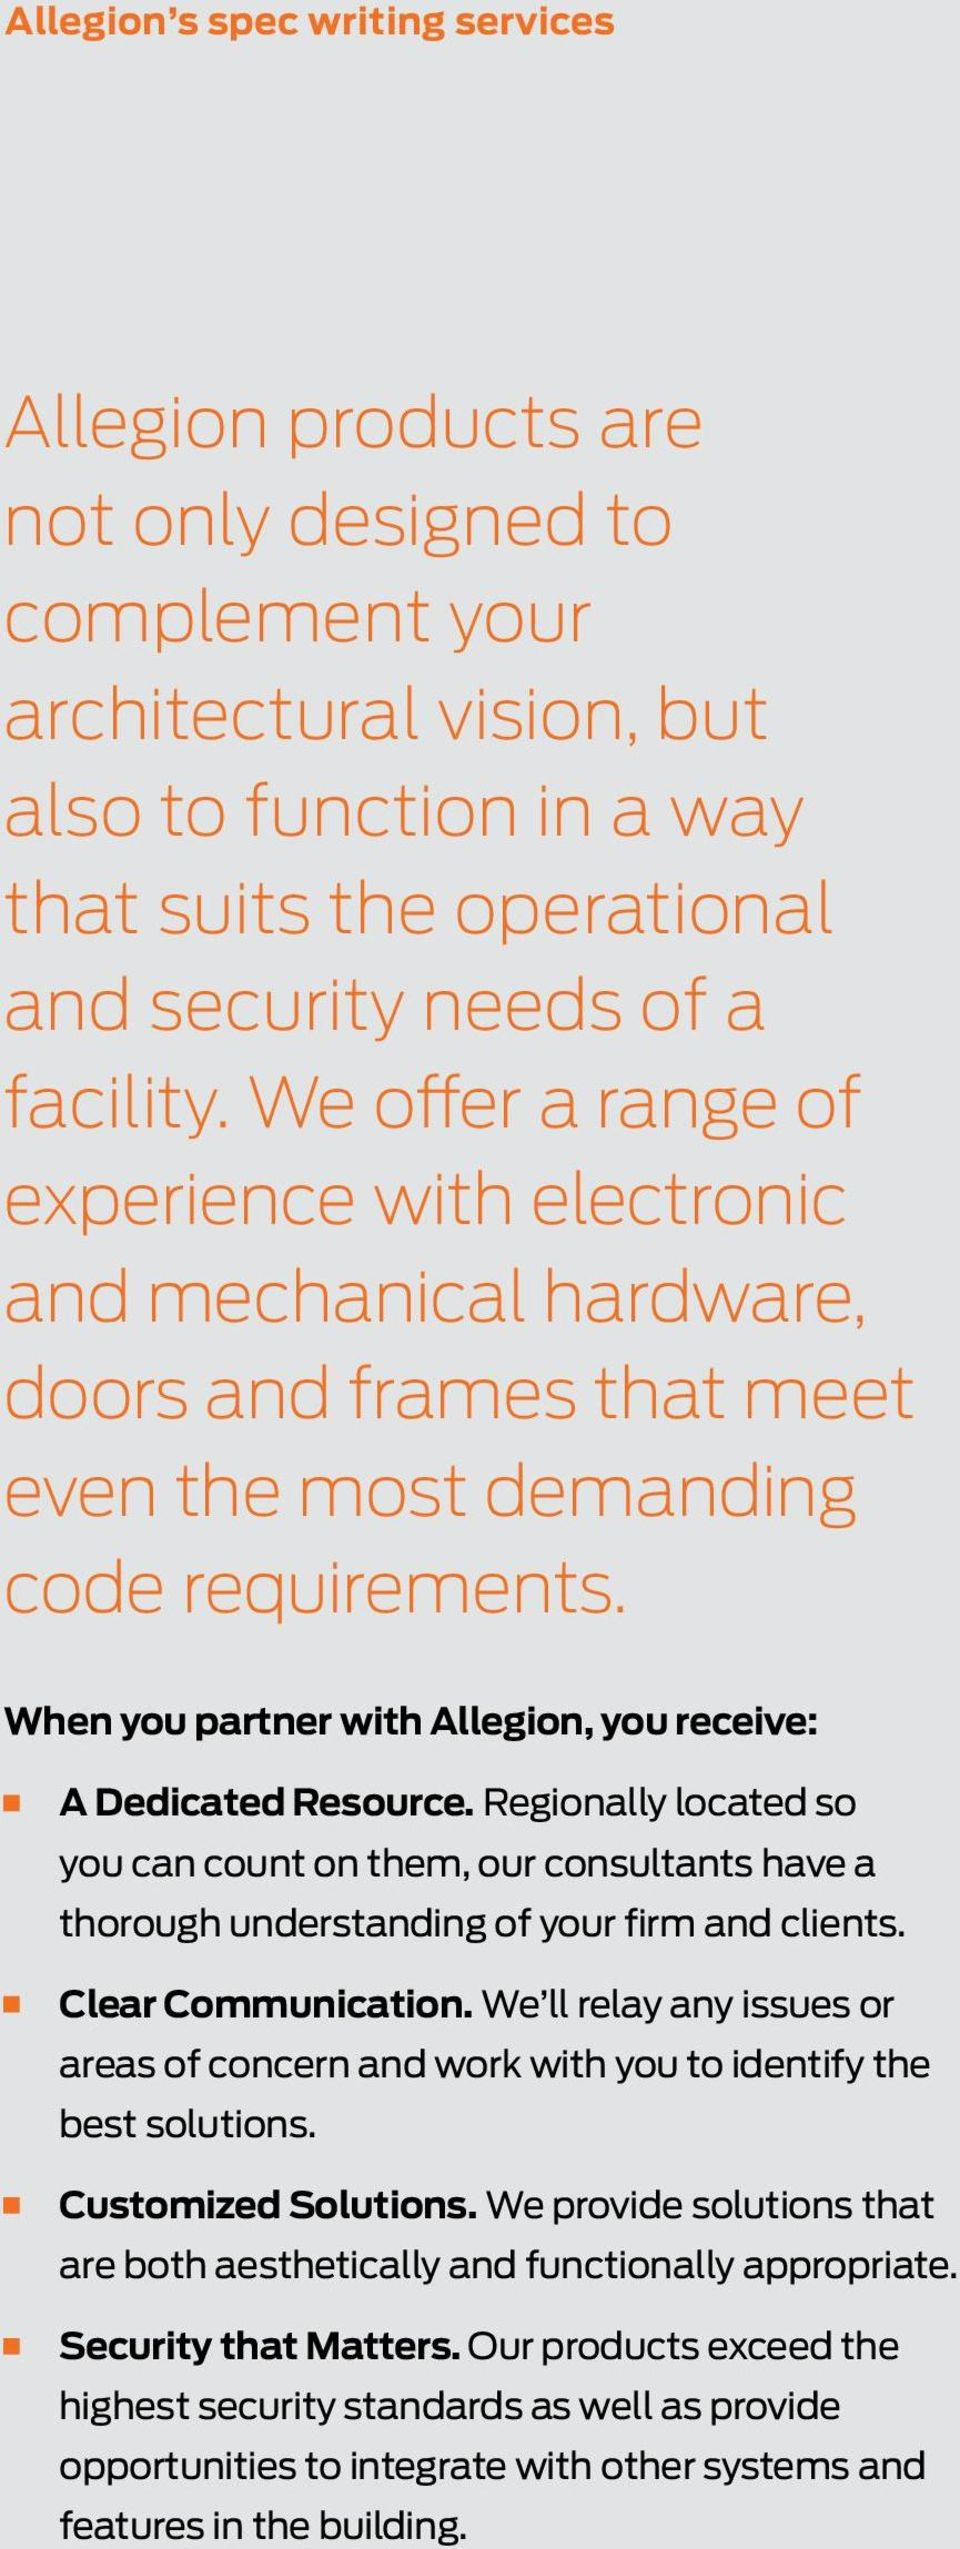 When you partner with Allegion, you receive: A Dedicated Resource. Regionally located so you can count on them, our consultants have a thorough understanding of your firm and clients.